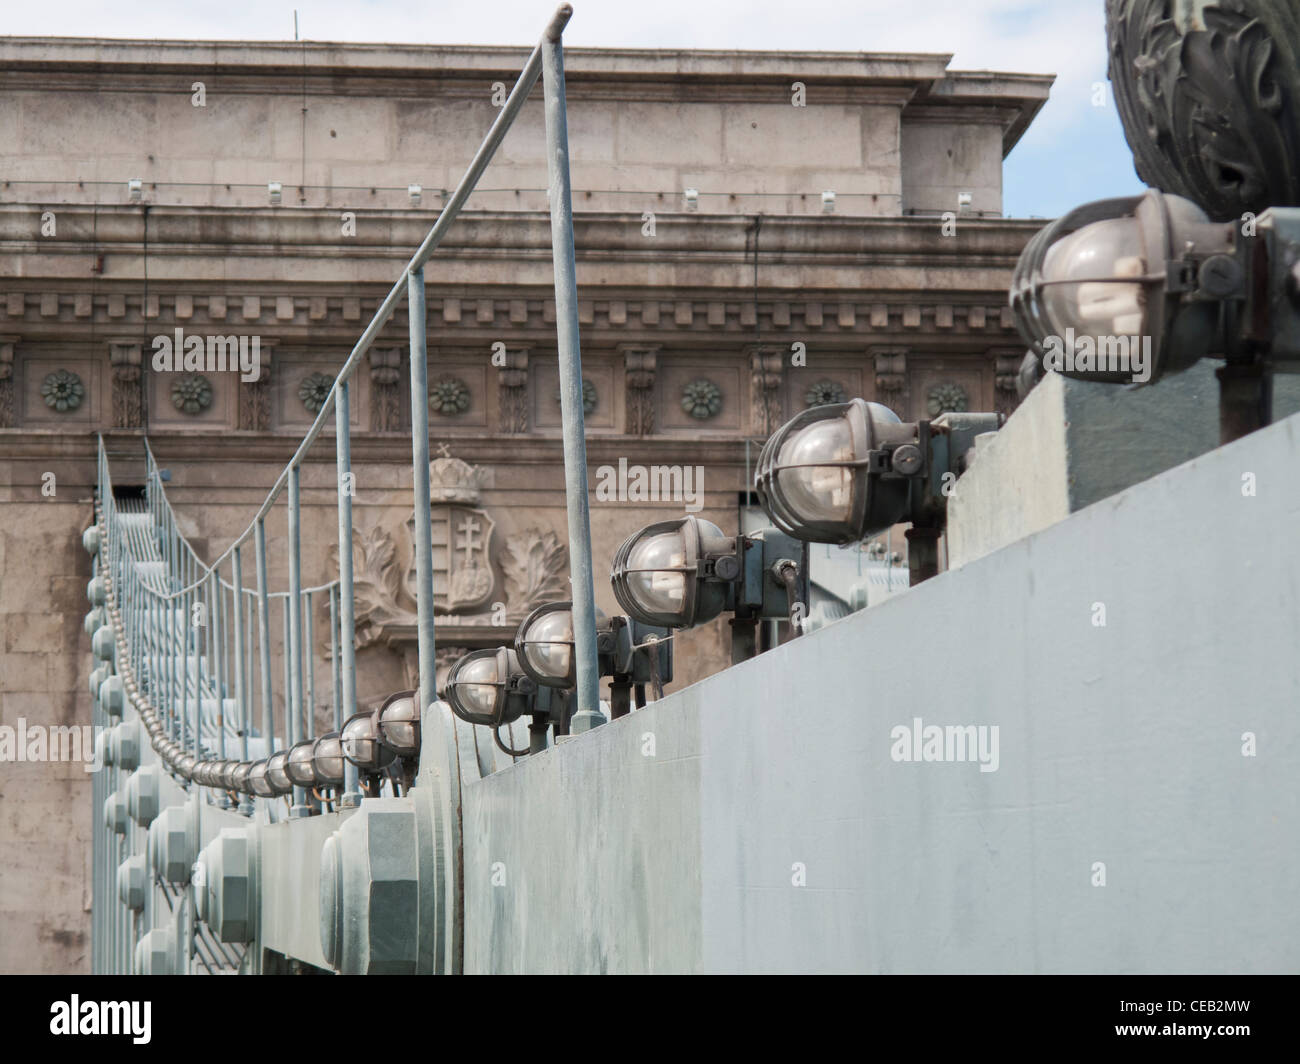 illumination system at the Chain Bridge over the Danube river, Budapest - Stock Image